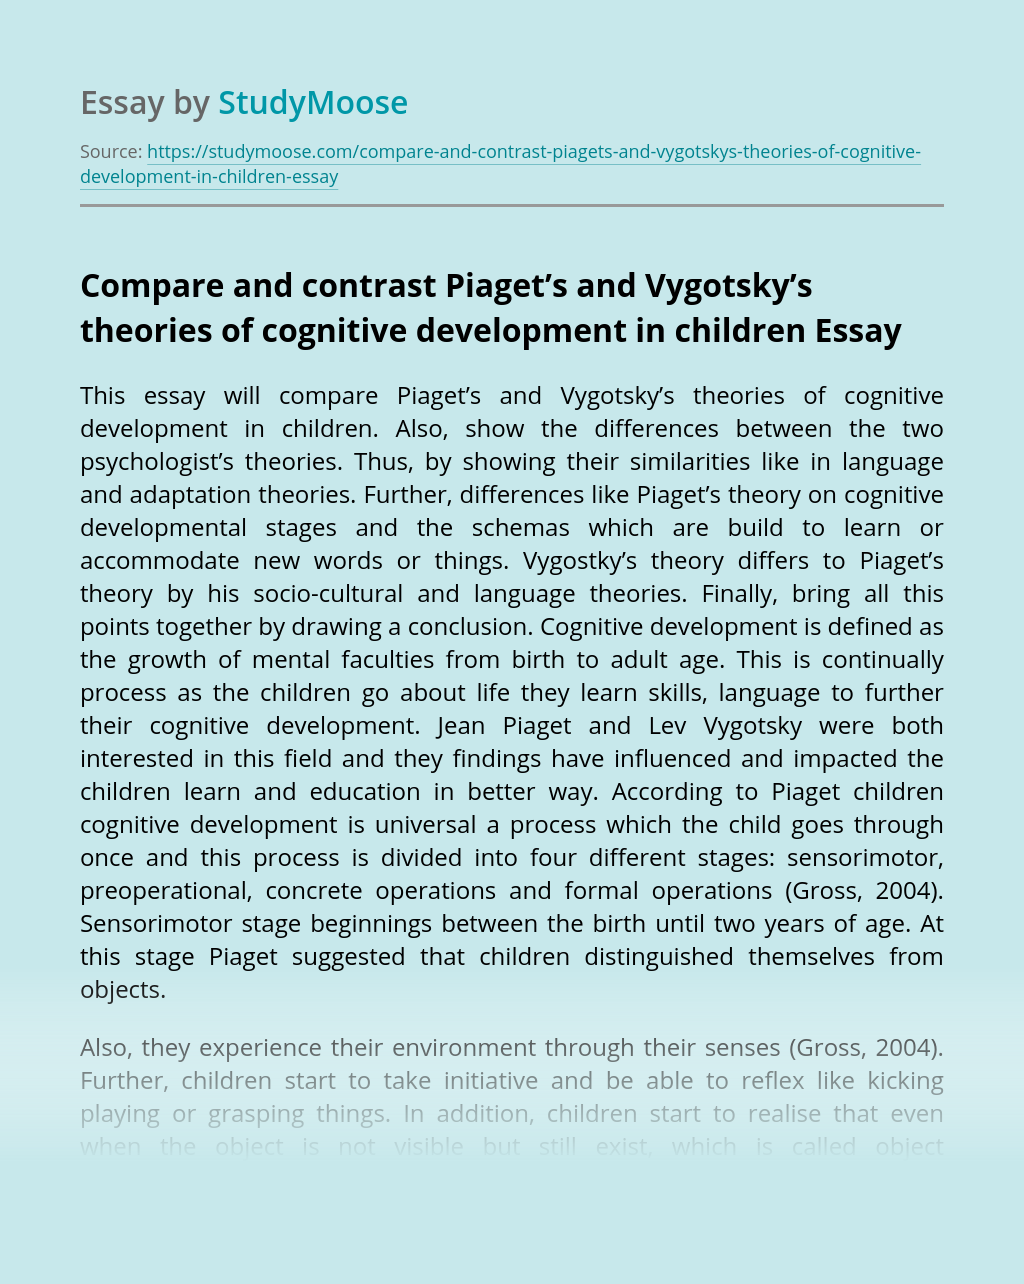 Compare and contrast Piaget's and Vygotsky's theories of cognitive development in children